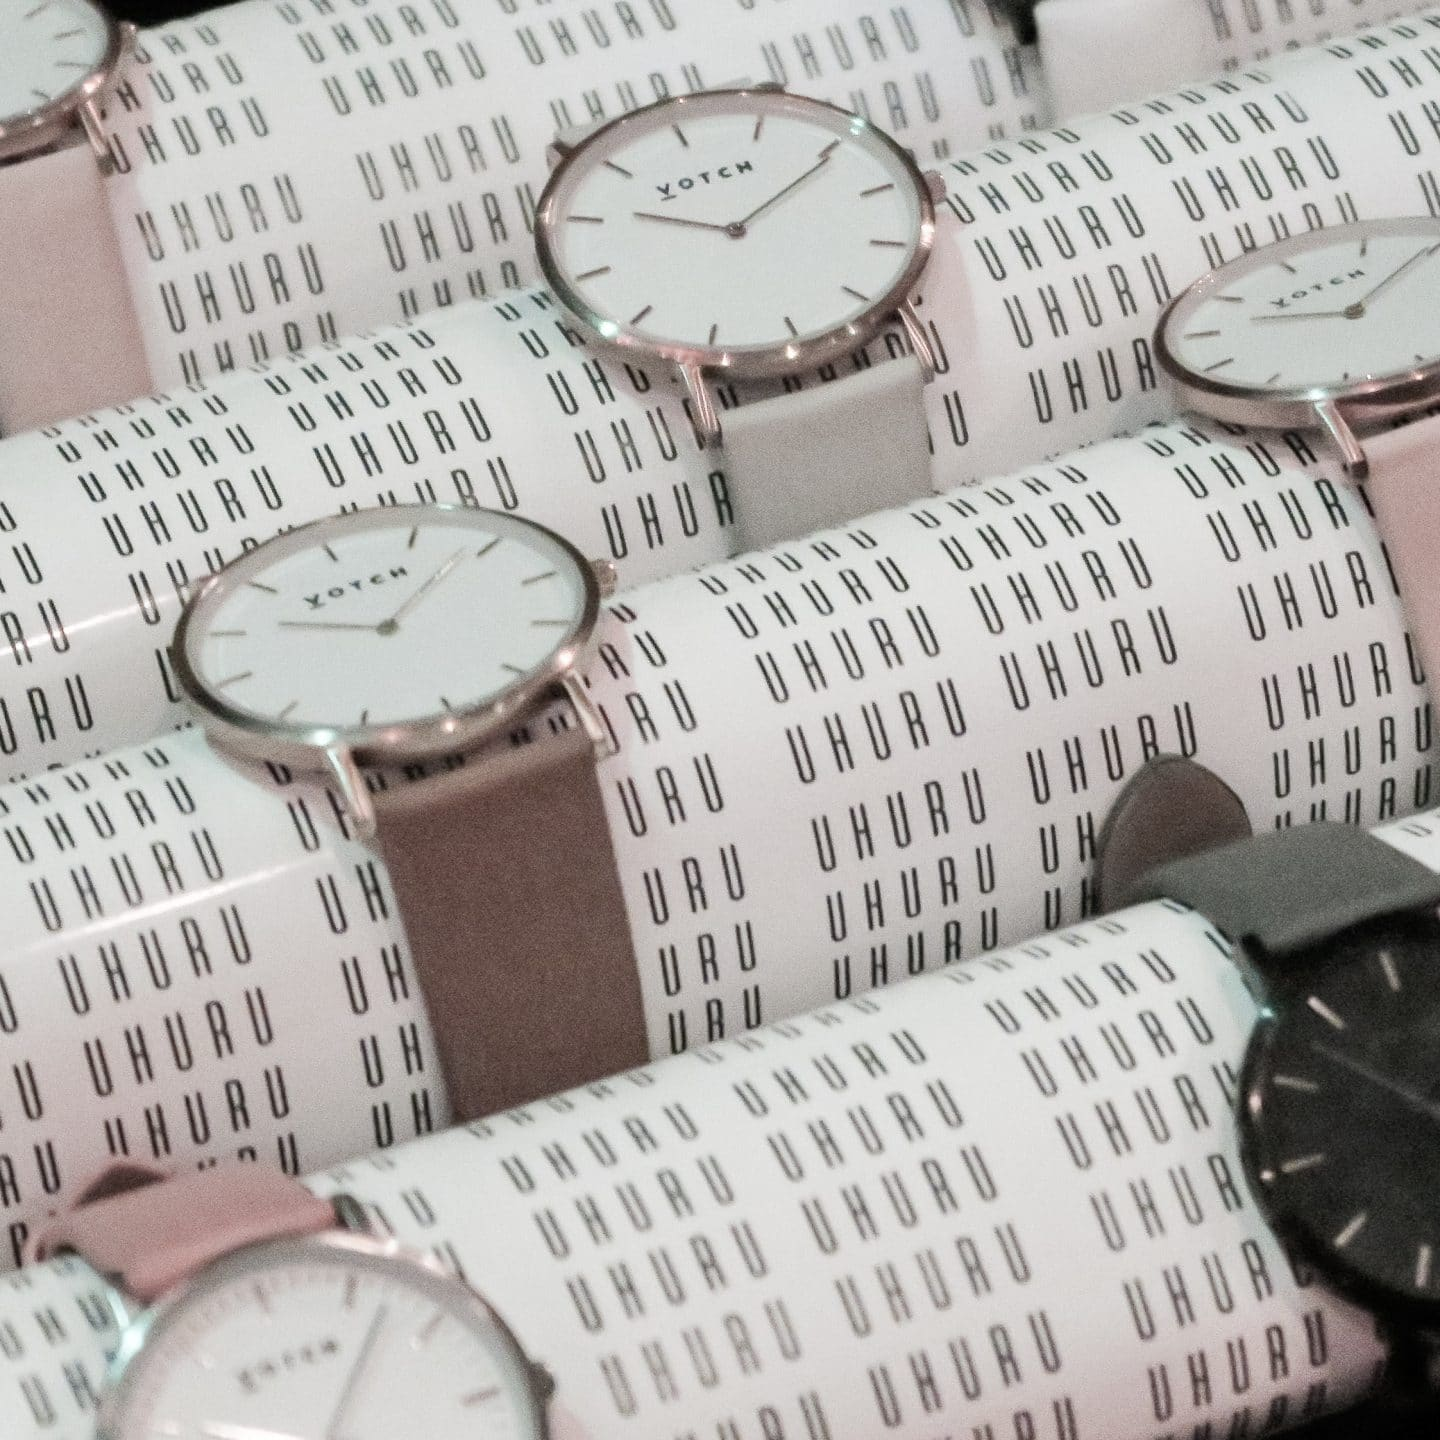 Votch Watches at Uhuru Launch Party | Curiously Conscious